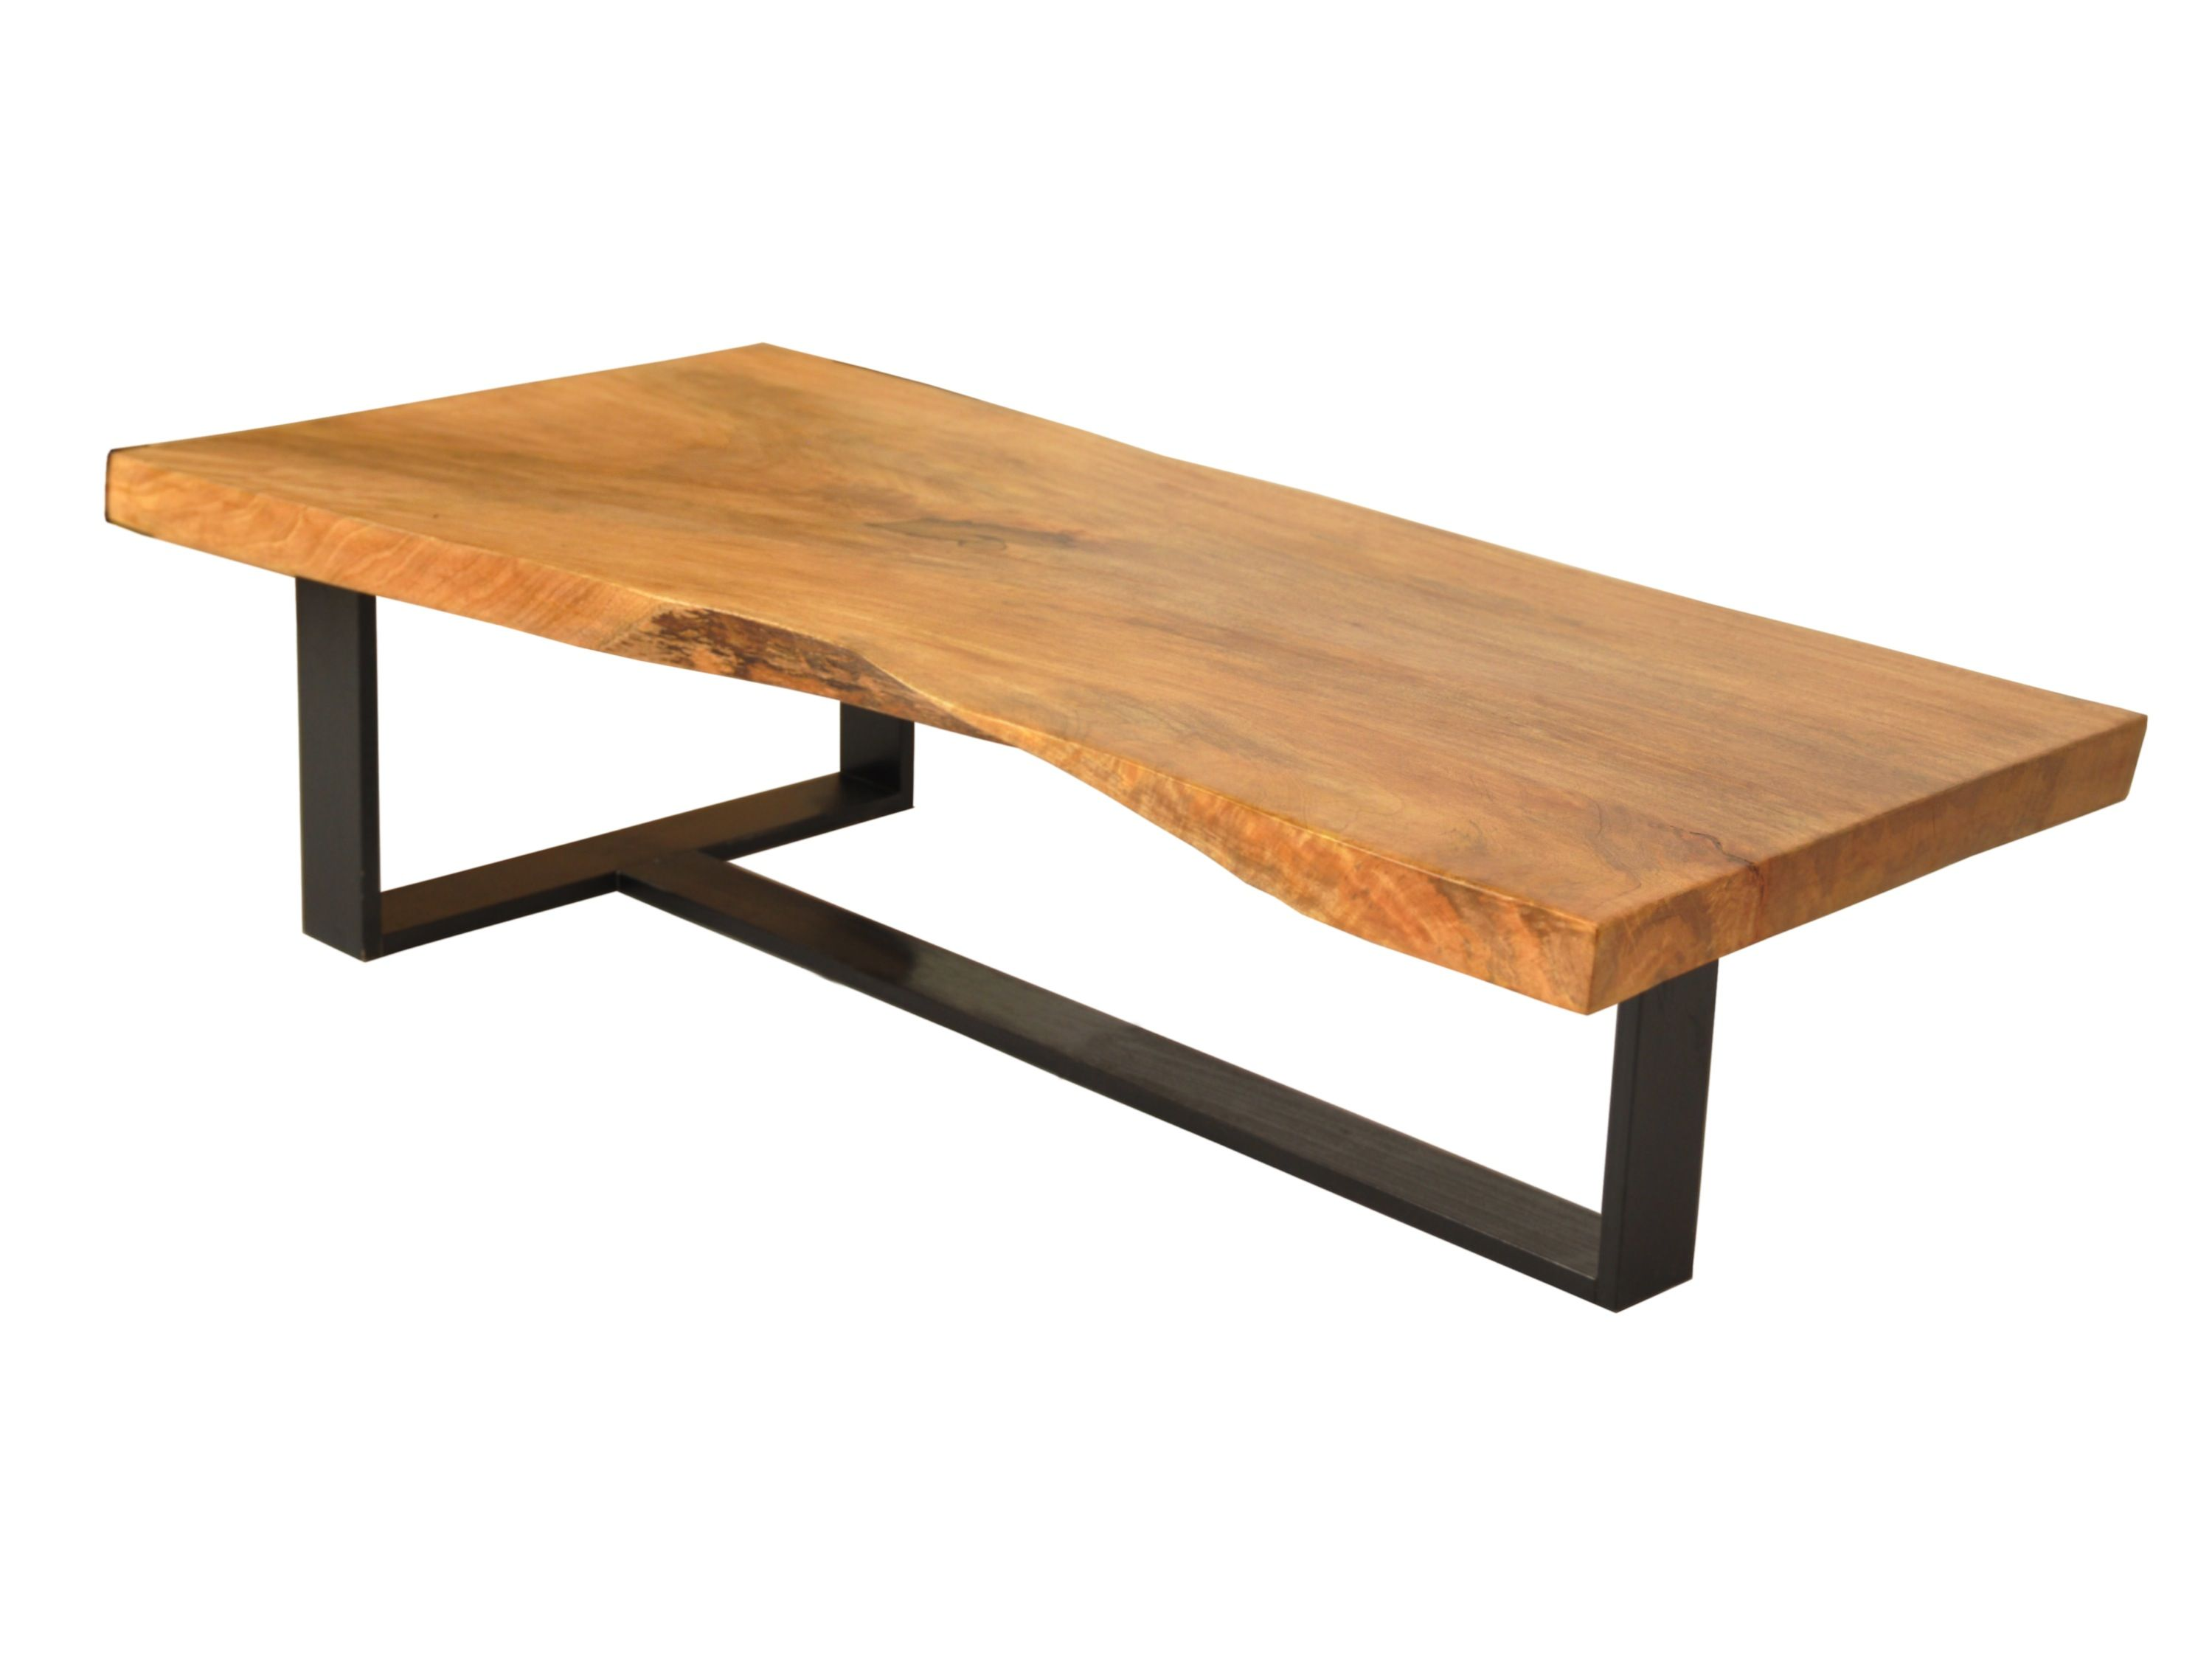 Single slab coffee table blackened metal base solid wood for Wood slab coffee table